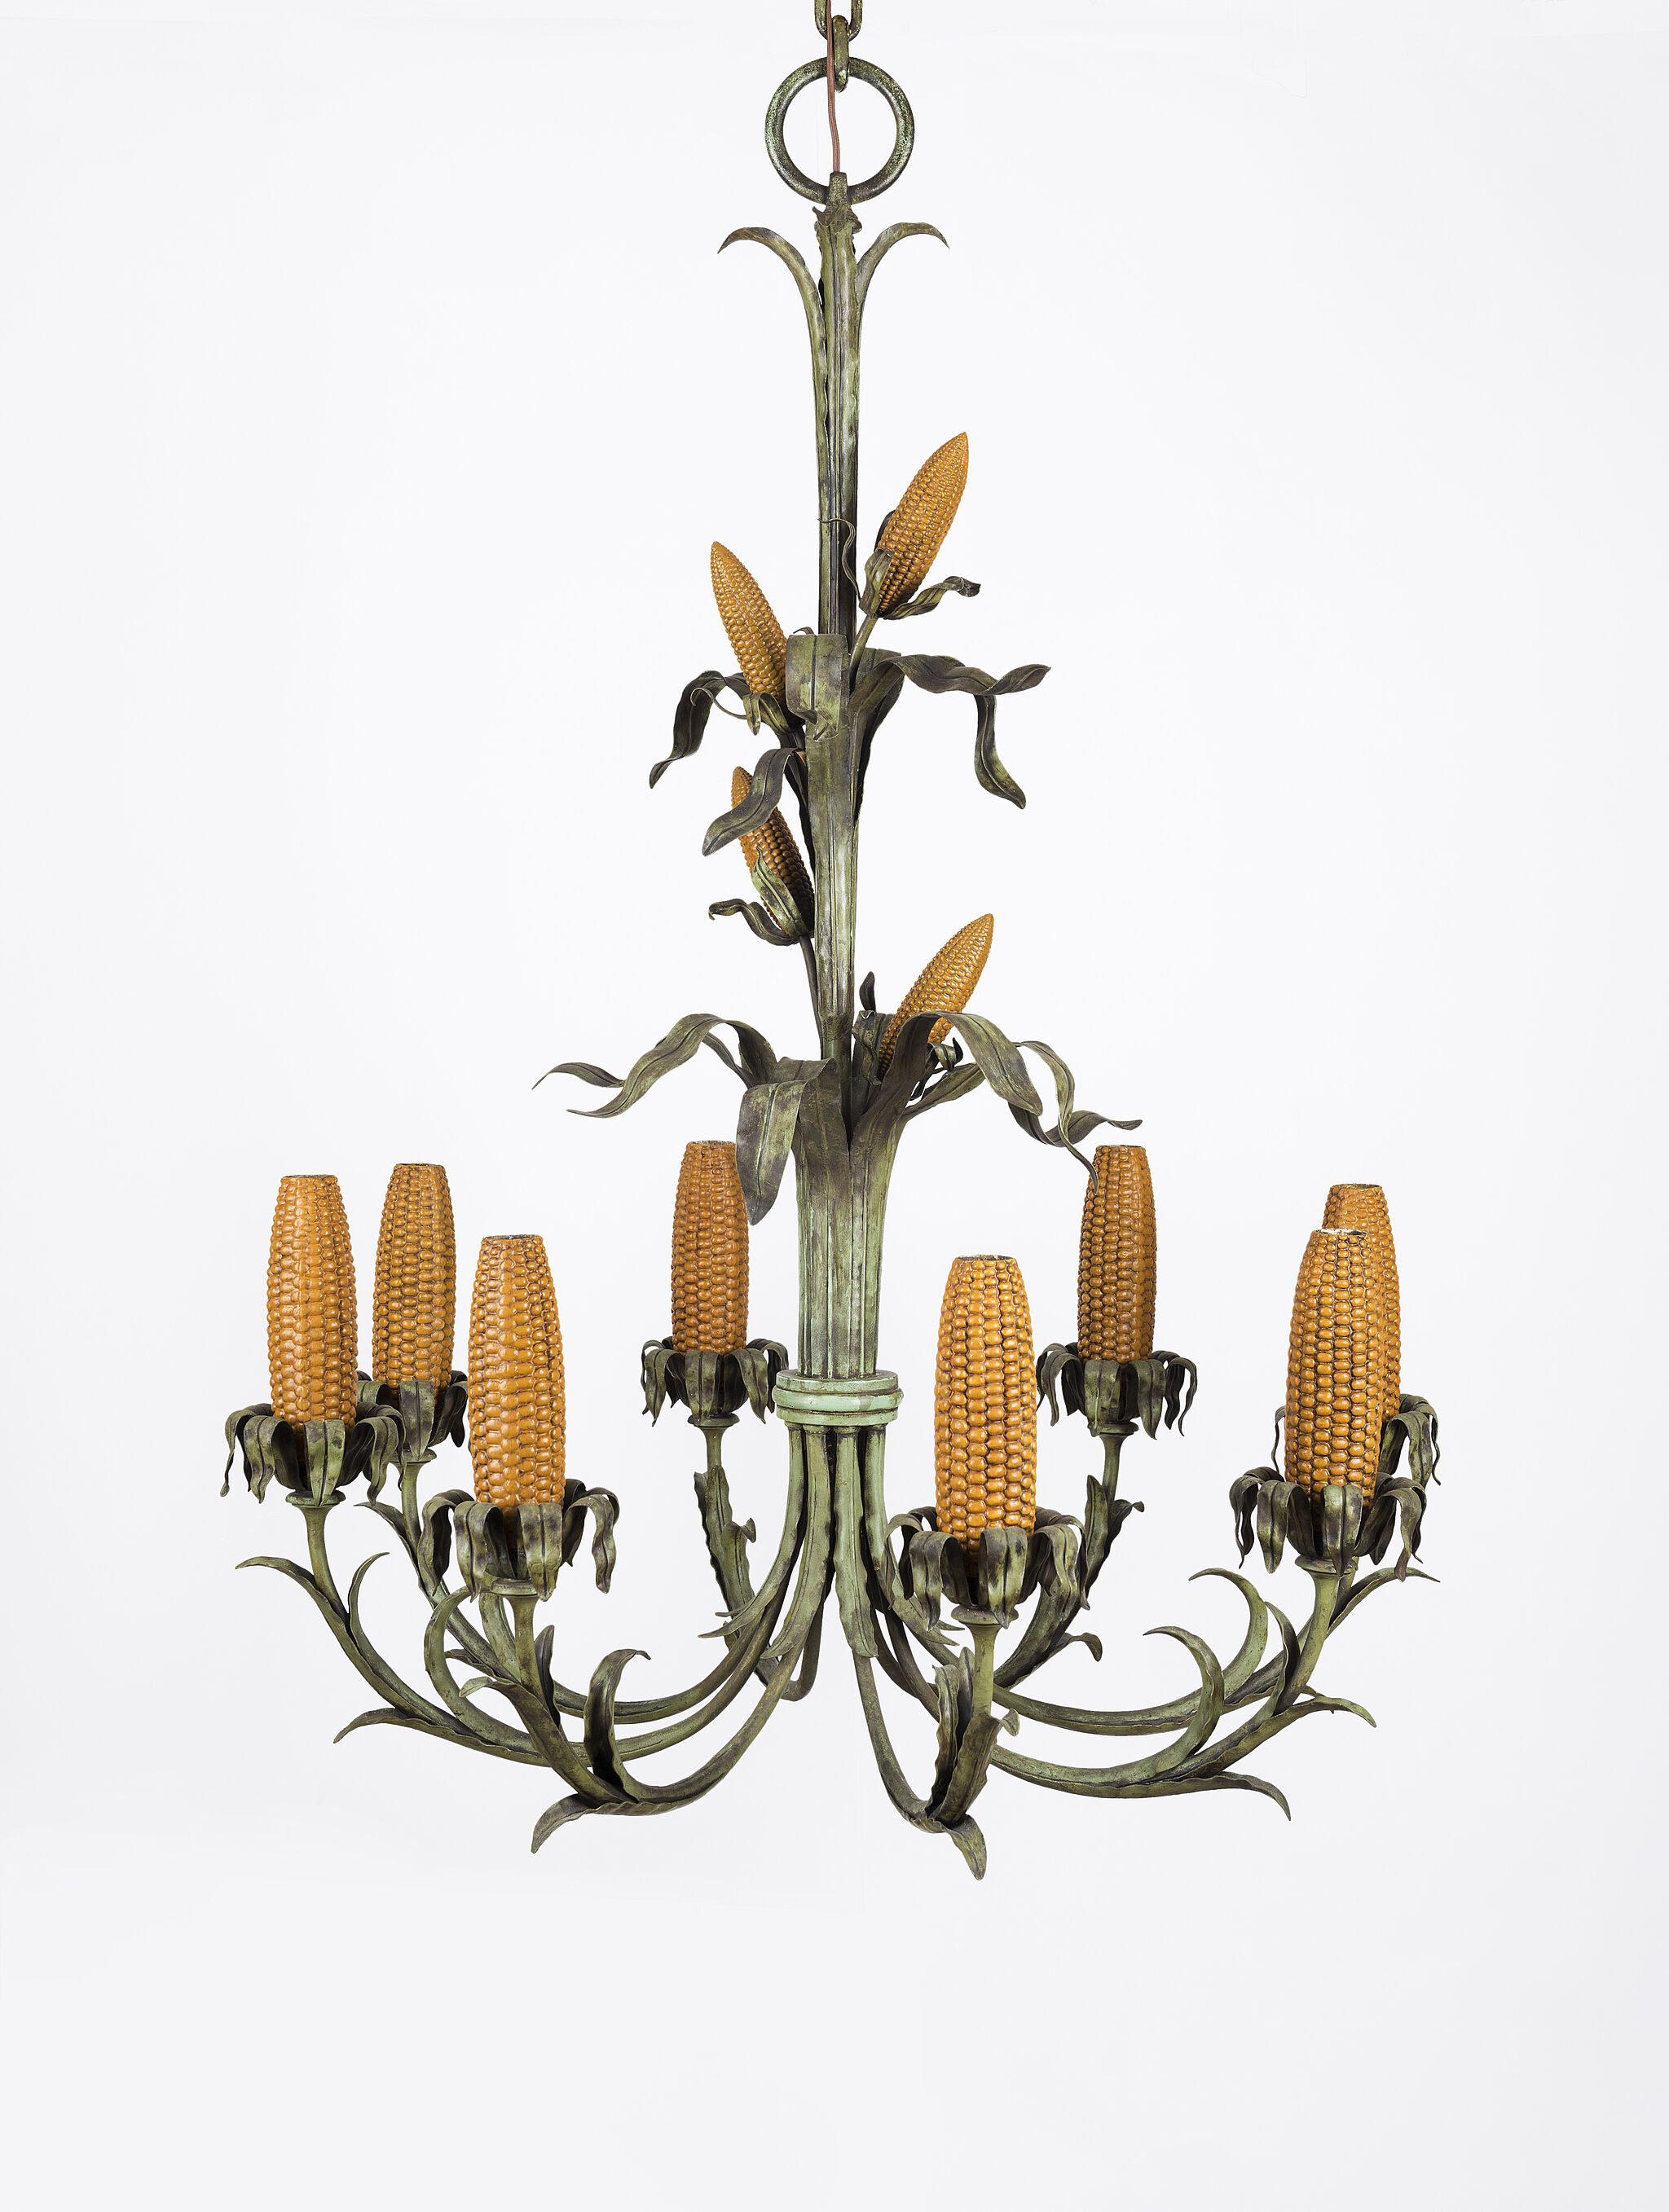 Chandelier Sculpture made from Corn Cobb